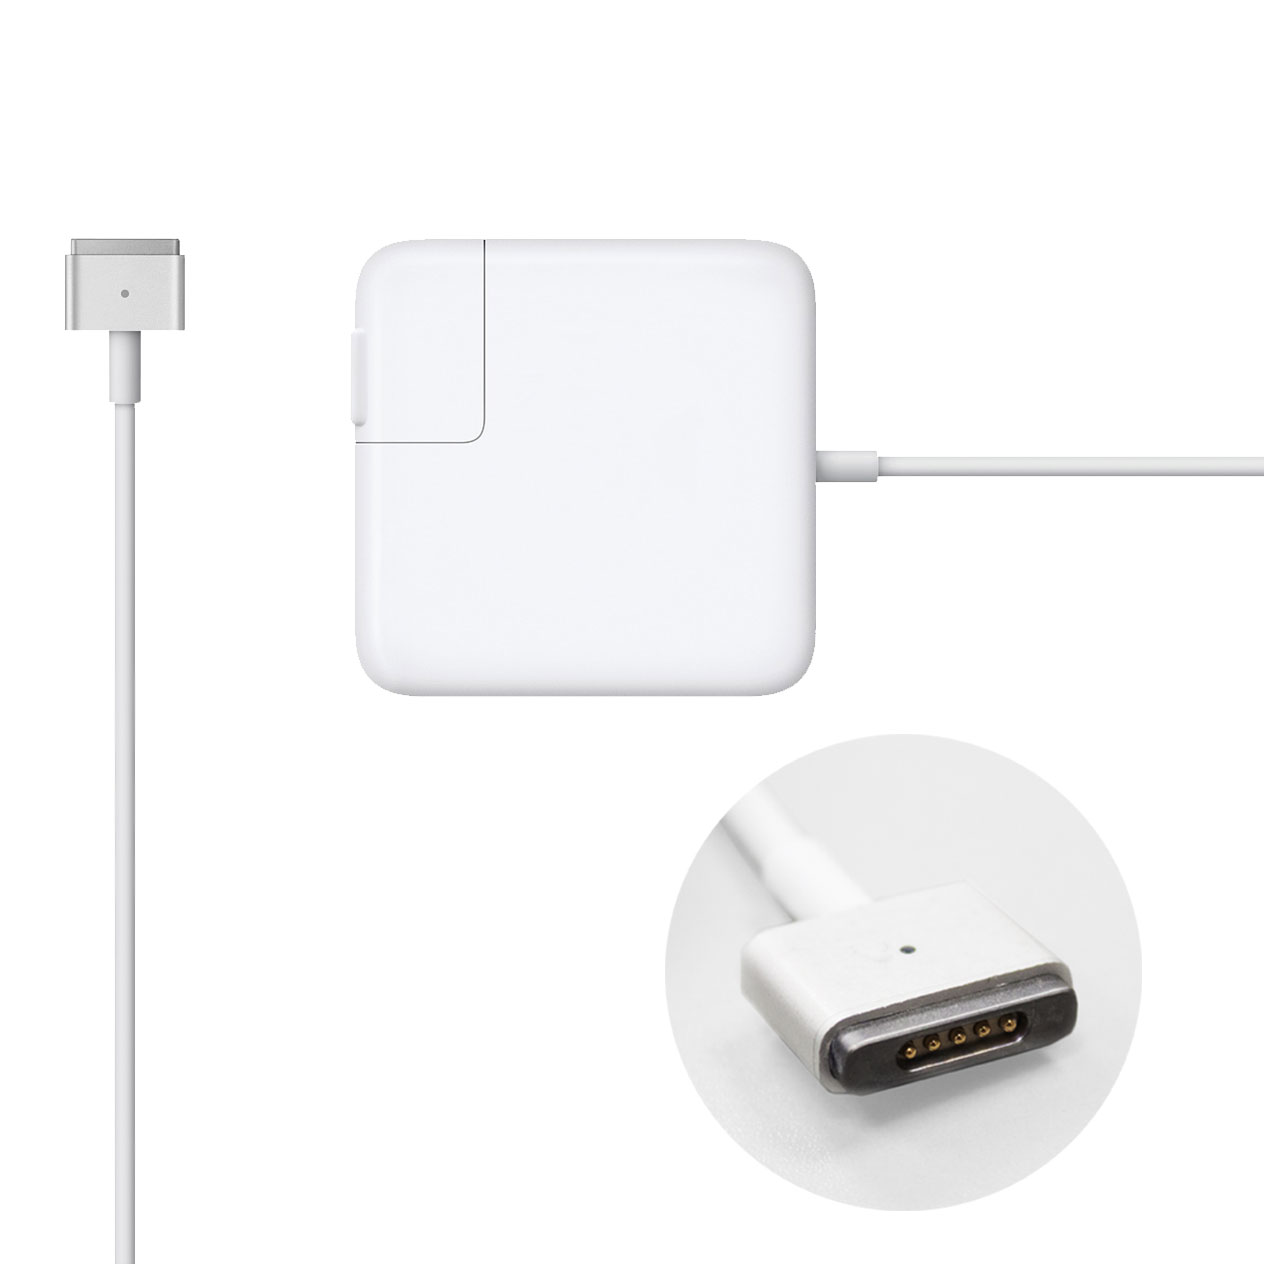 AmeriMax 85W AC Power Charger Adapter for MacBook Pro A1424 A1398 MD506LL/A MagSafe 2 at Sears.com